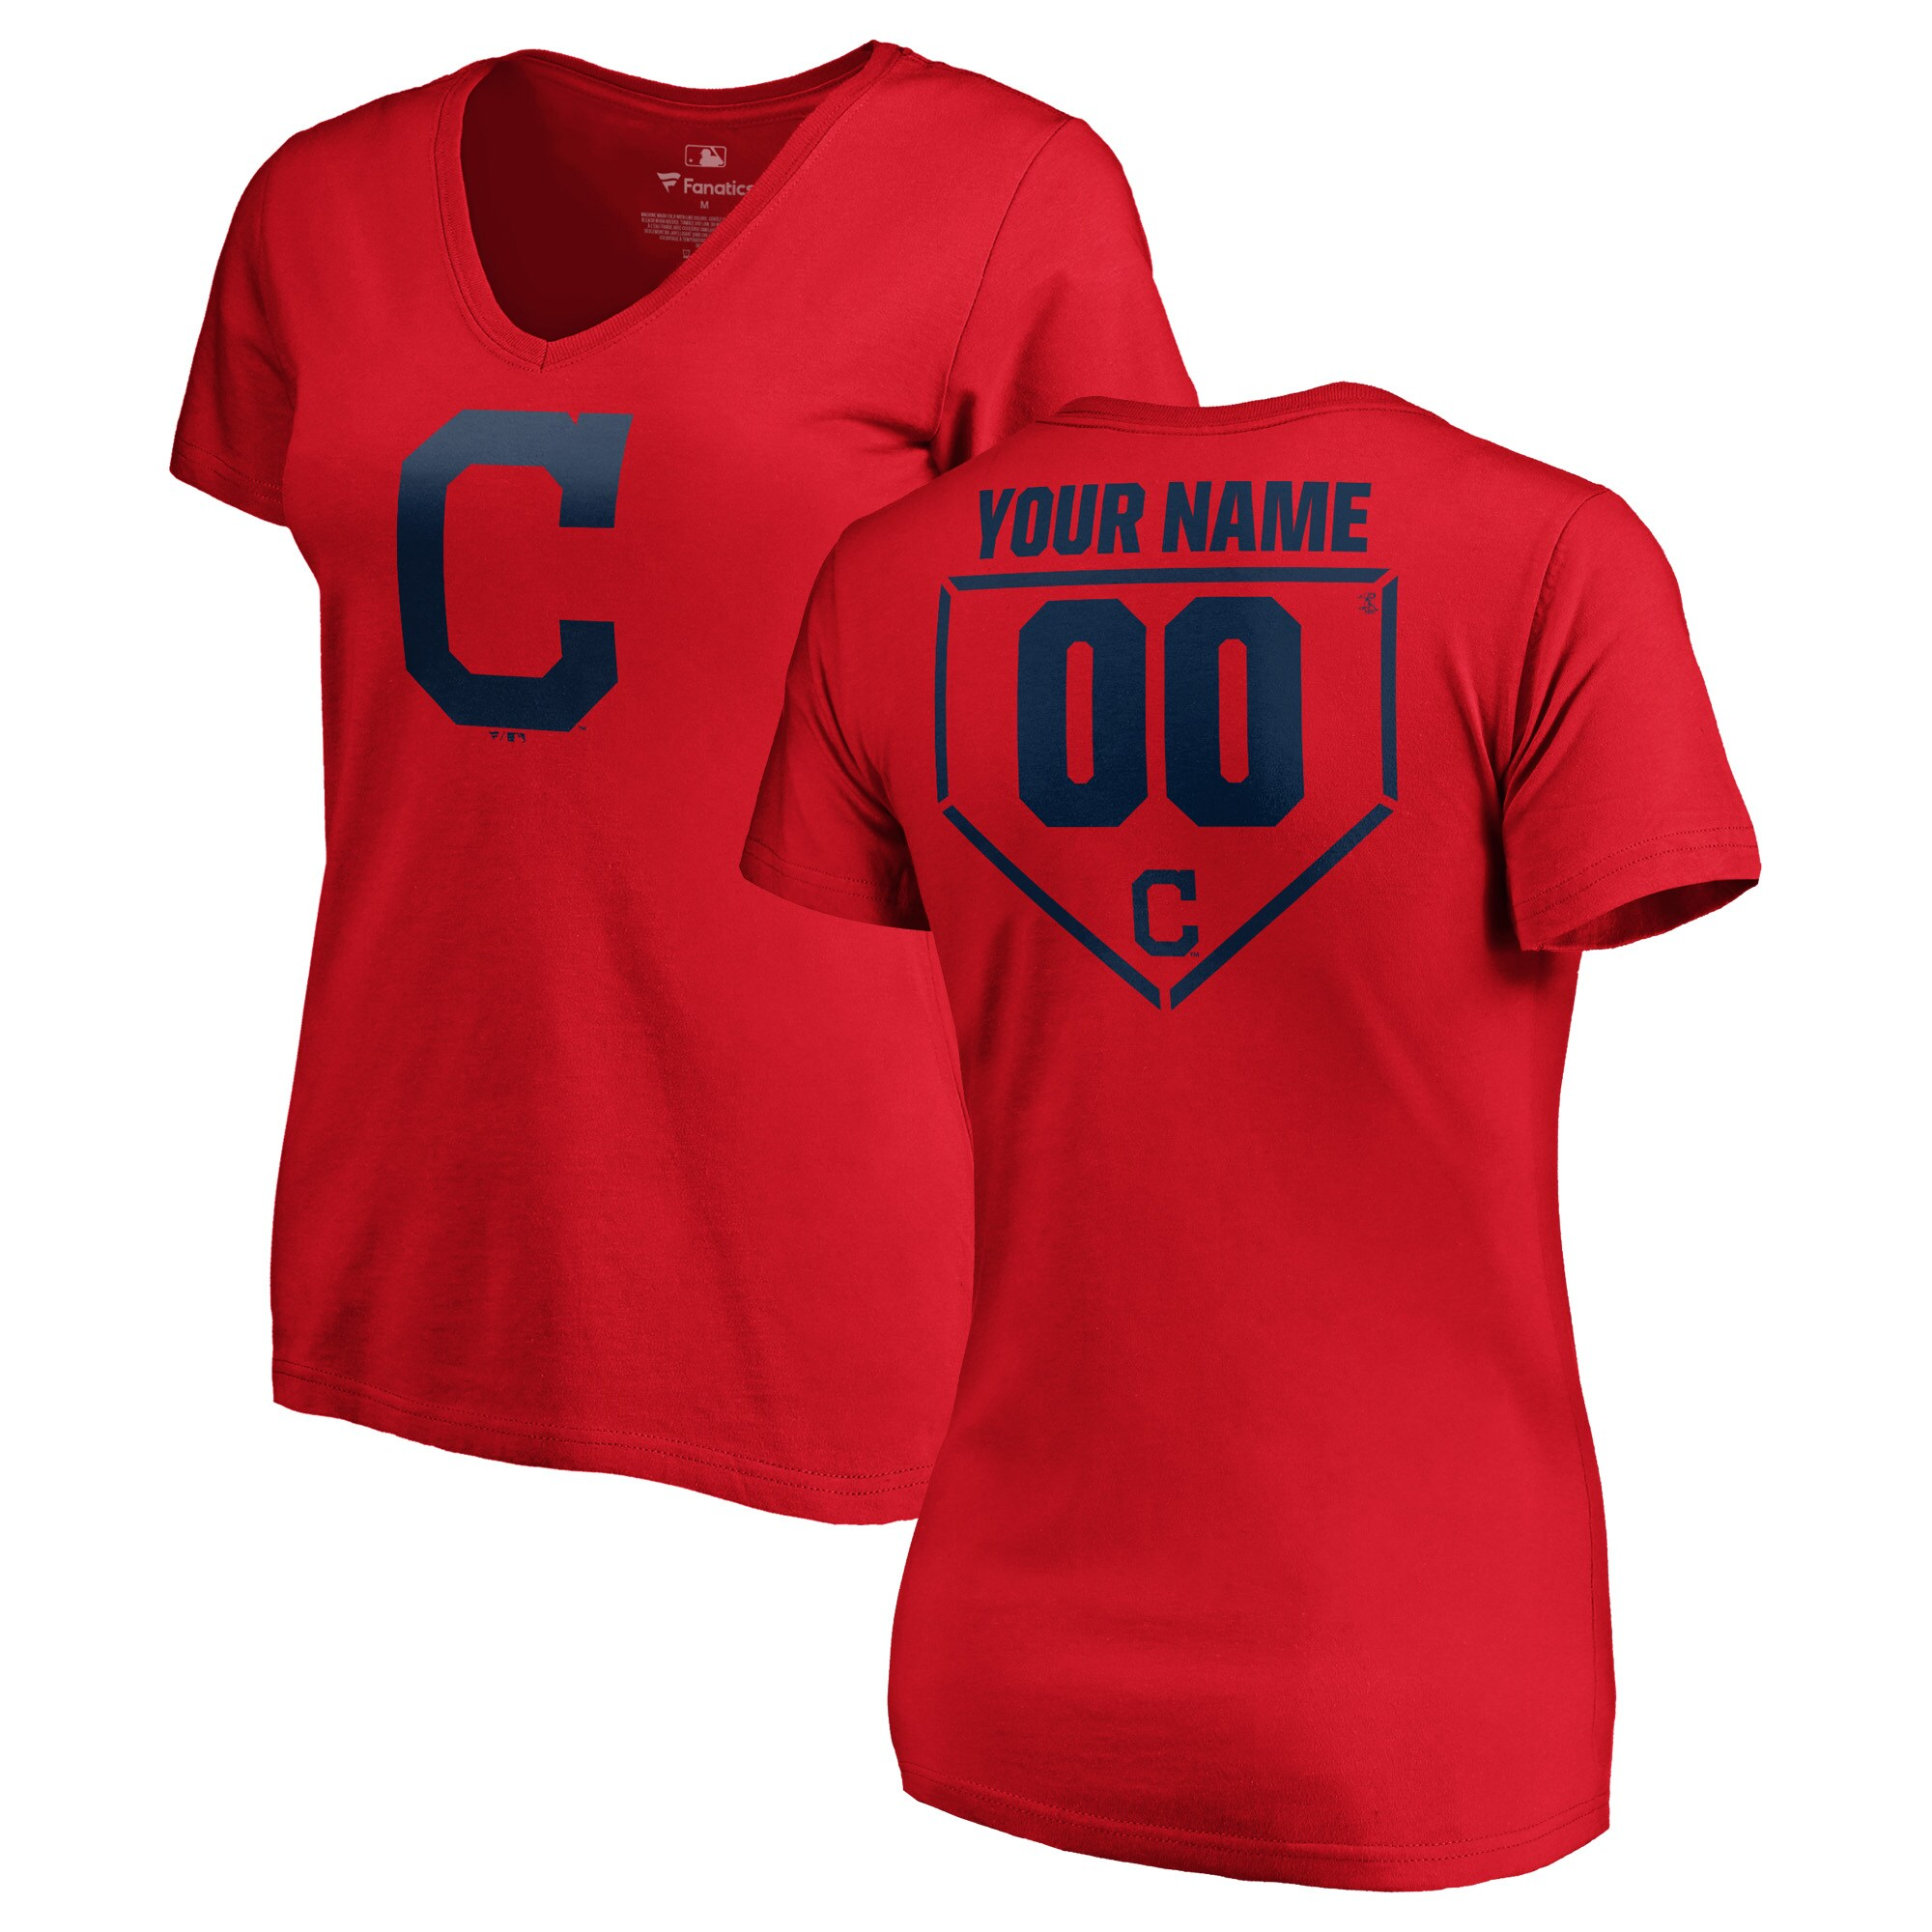 Cleveland Indians Fanatics Branded Women's Personalized RBI Slim Fit V-Neck T-Shirt - Red